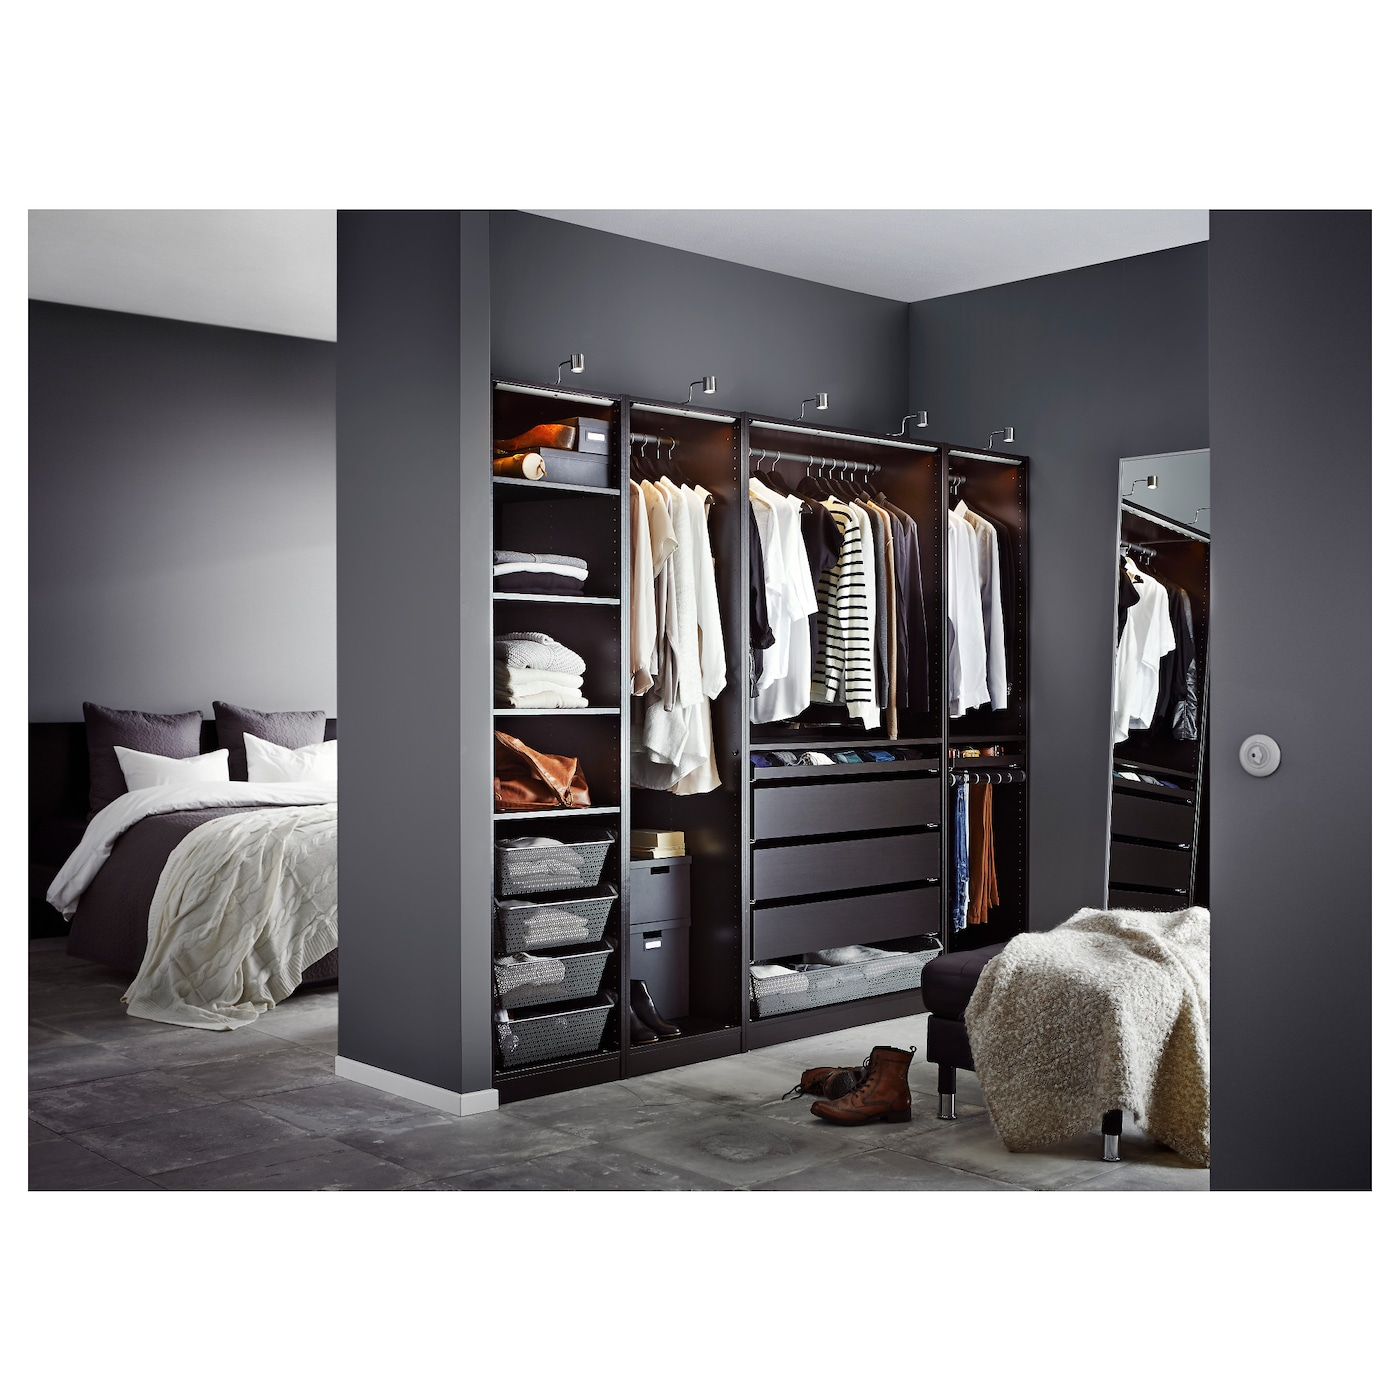 PAX Wardrobe Black-brown 250x58x201 cm - IKEA